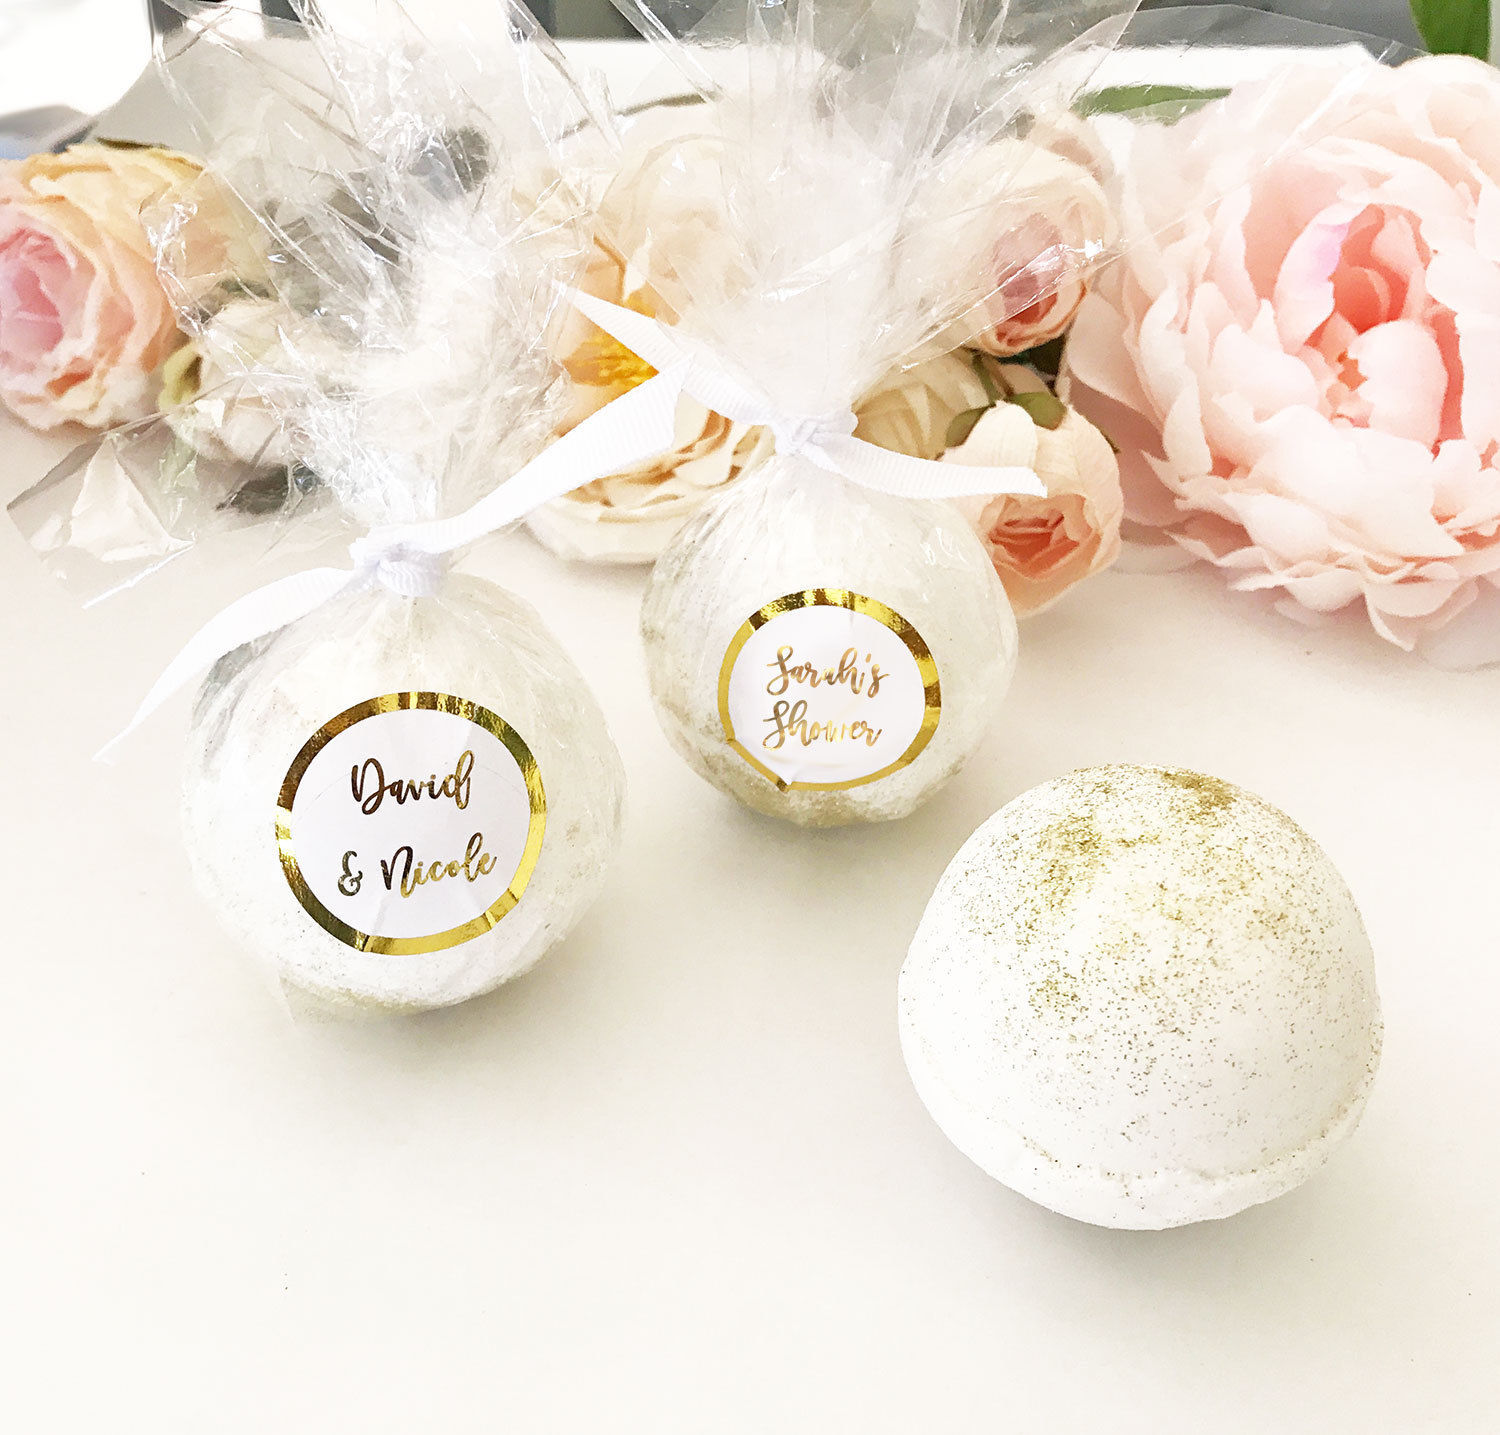 25 Personalized Silver Rose Gold Foil Bath Bomb Bridal Shower Wedding Favor